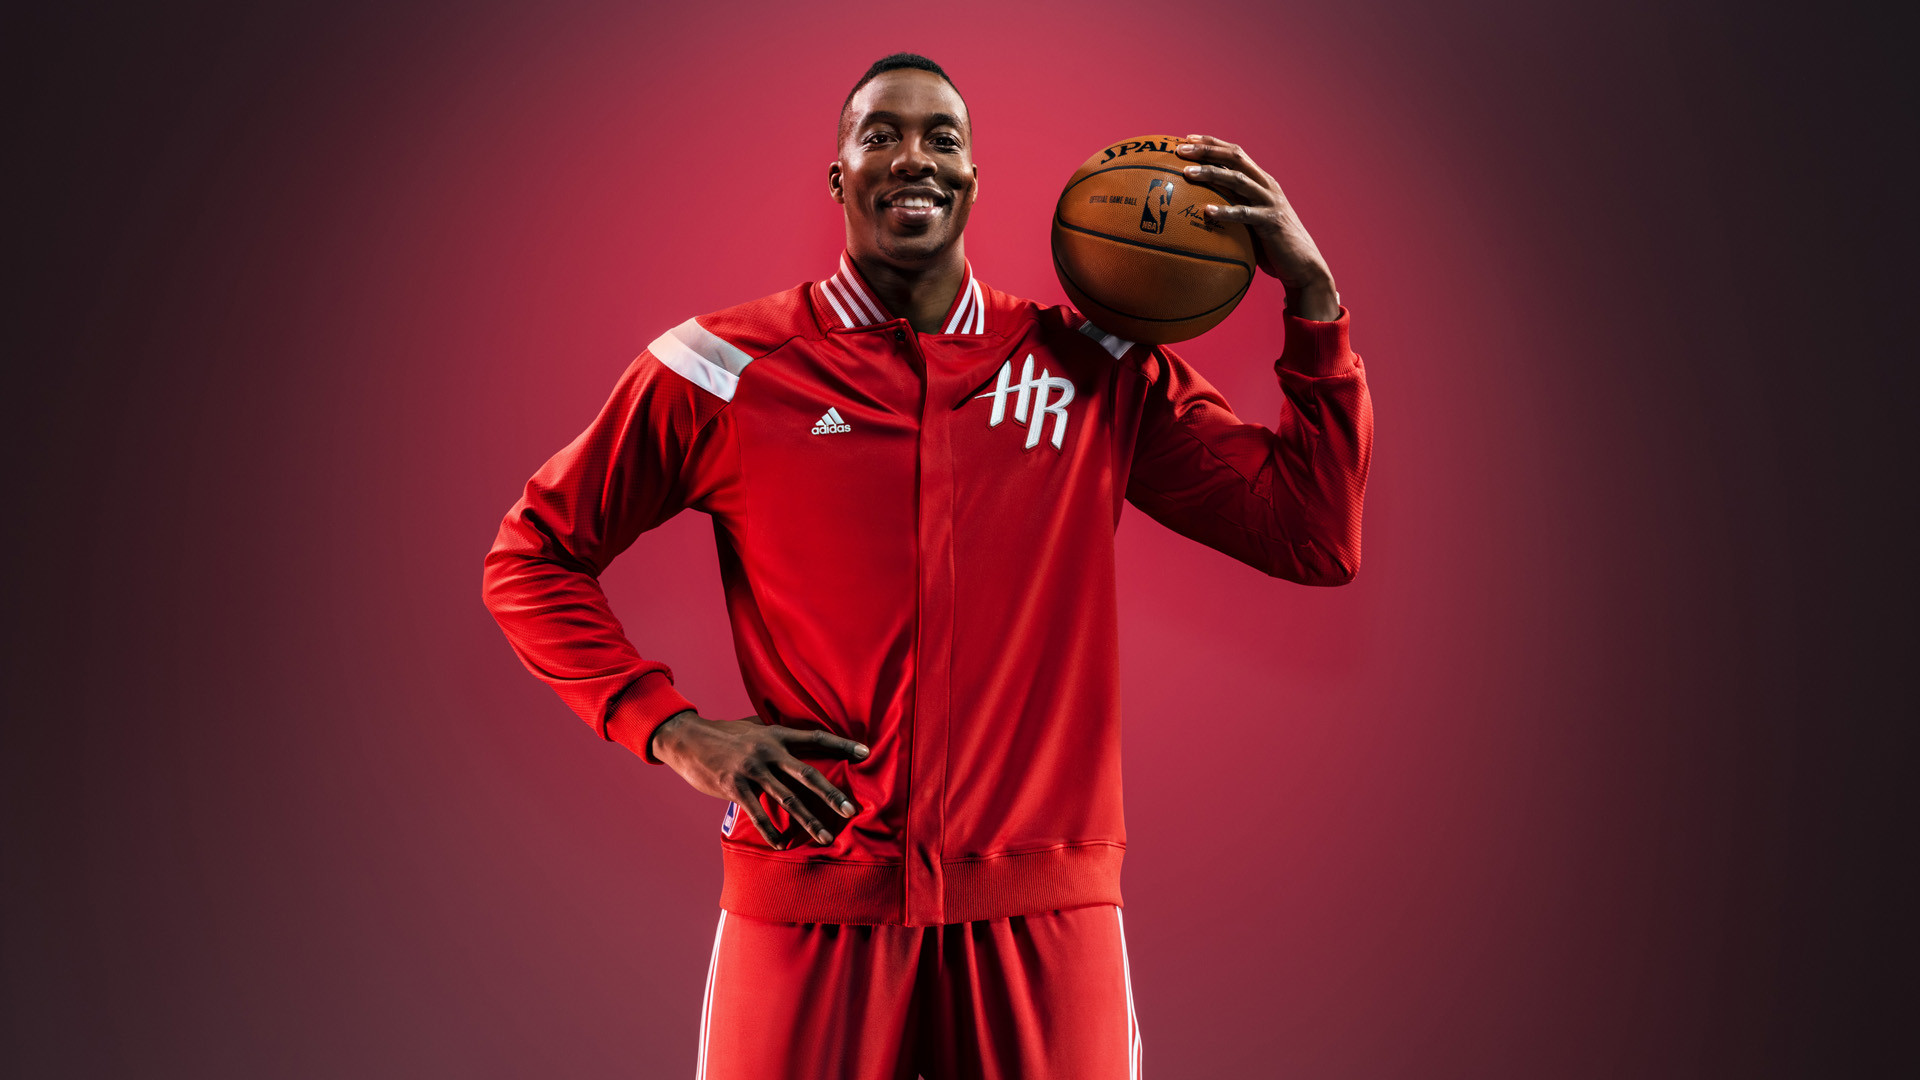 dwight howard wallpapers 62 images